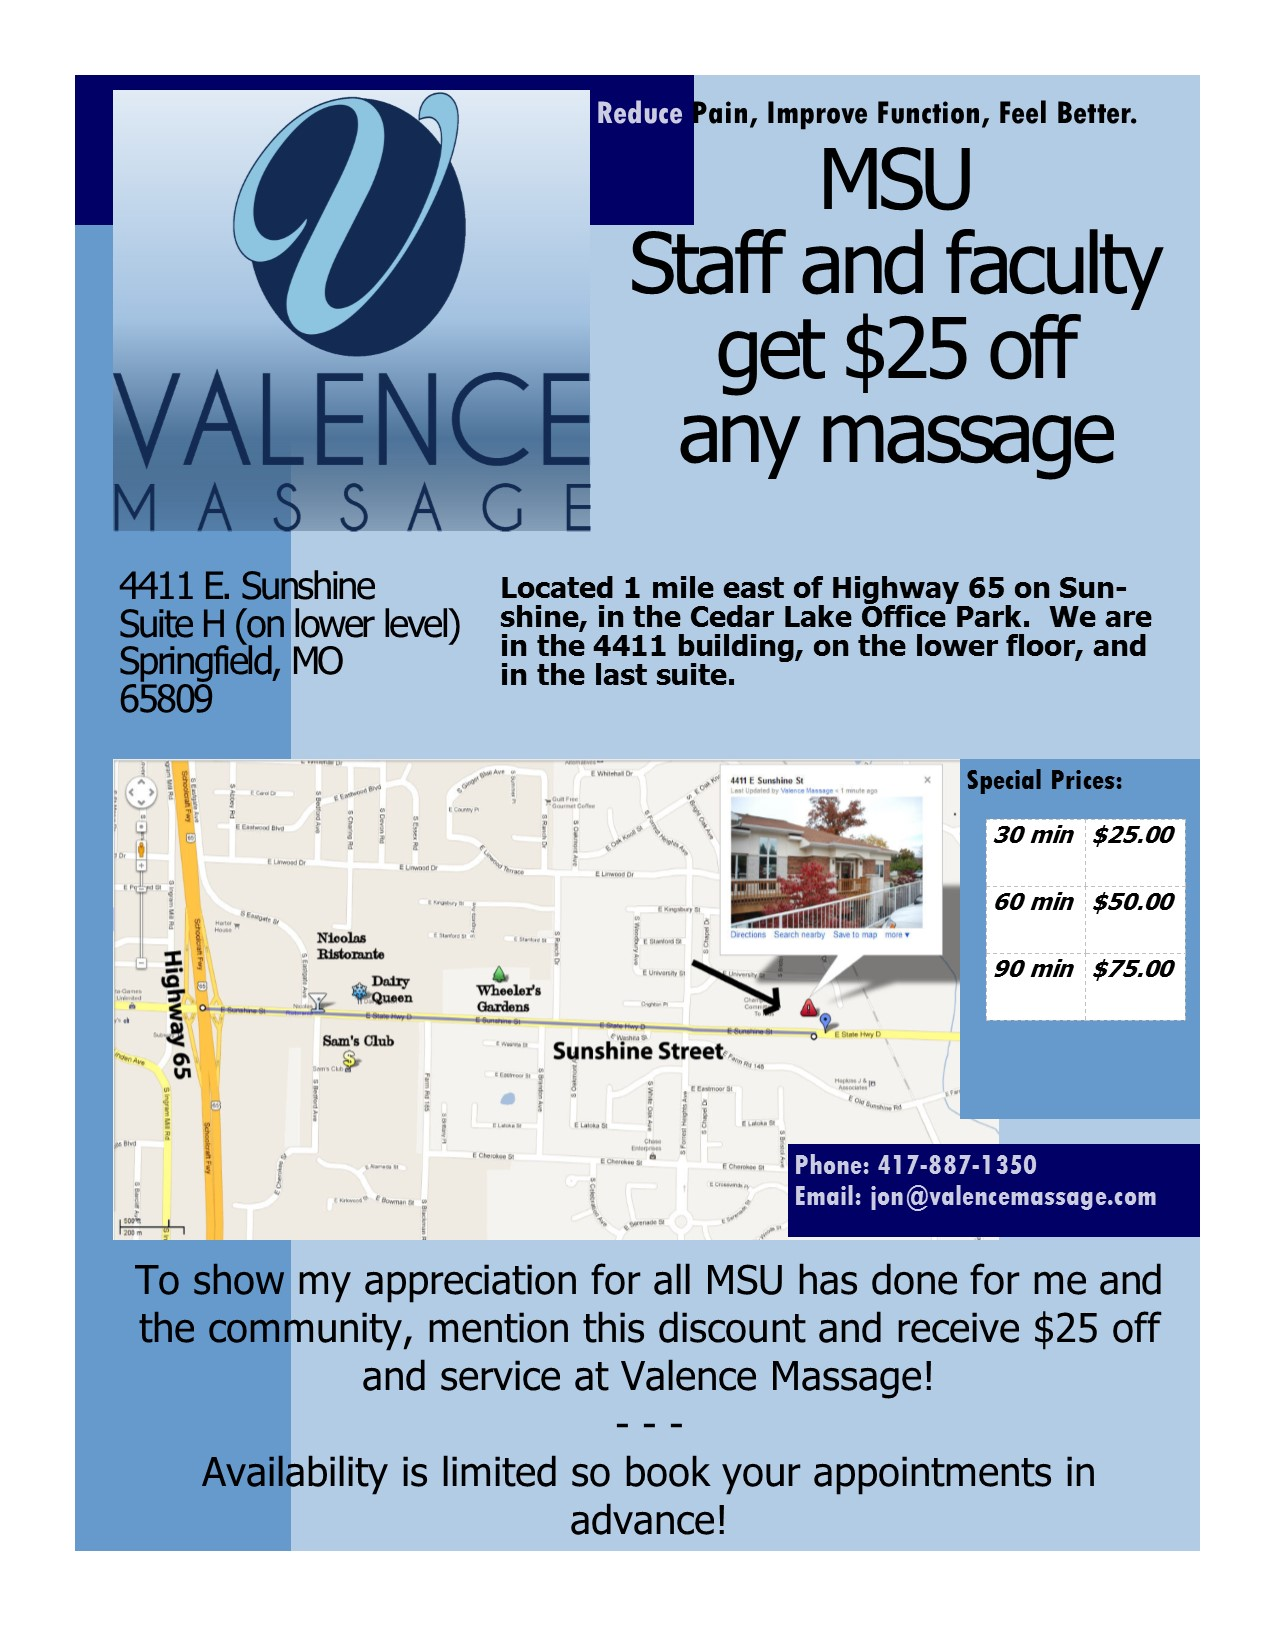 Valence Massage of Springfield